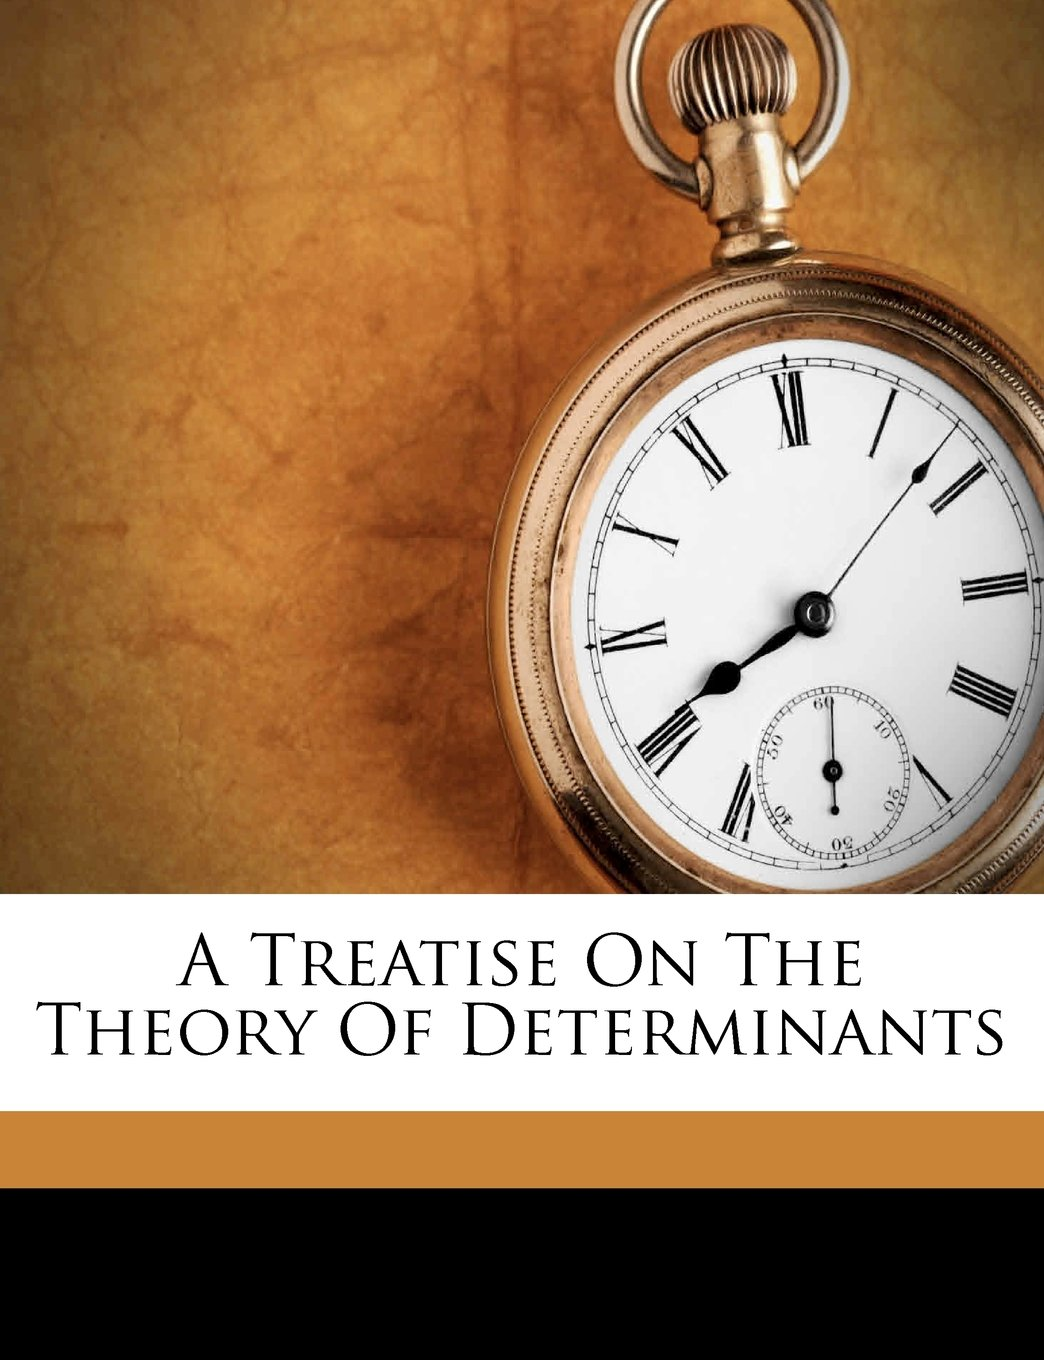 A treatise on the theory of determinants